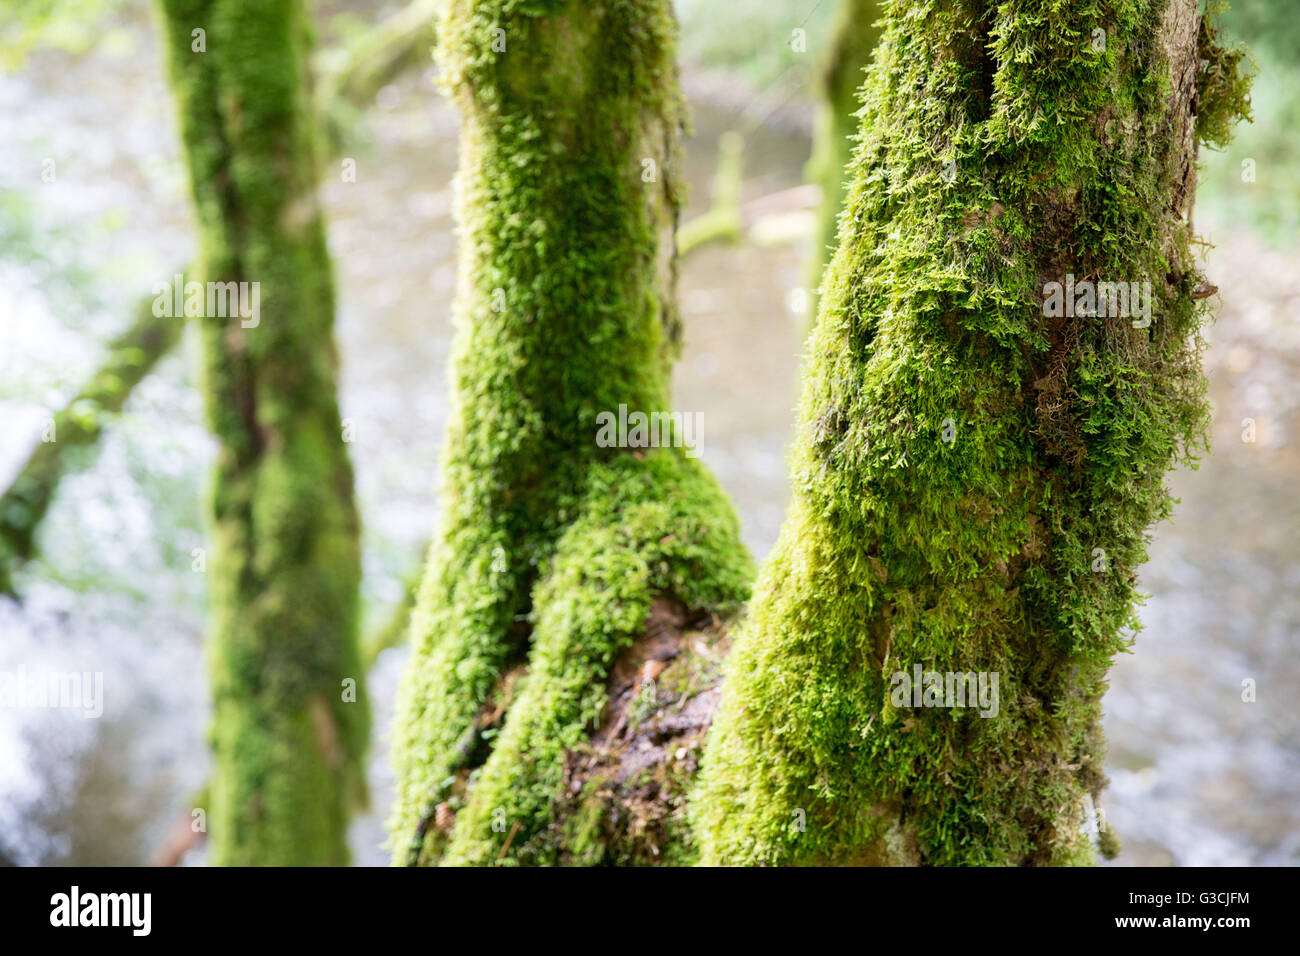 Germany, Baden-Württemberg, Black Forest, Wutach Gorge, moss-covered trunks - Stock Image